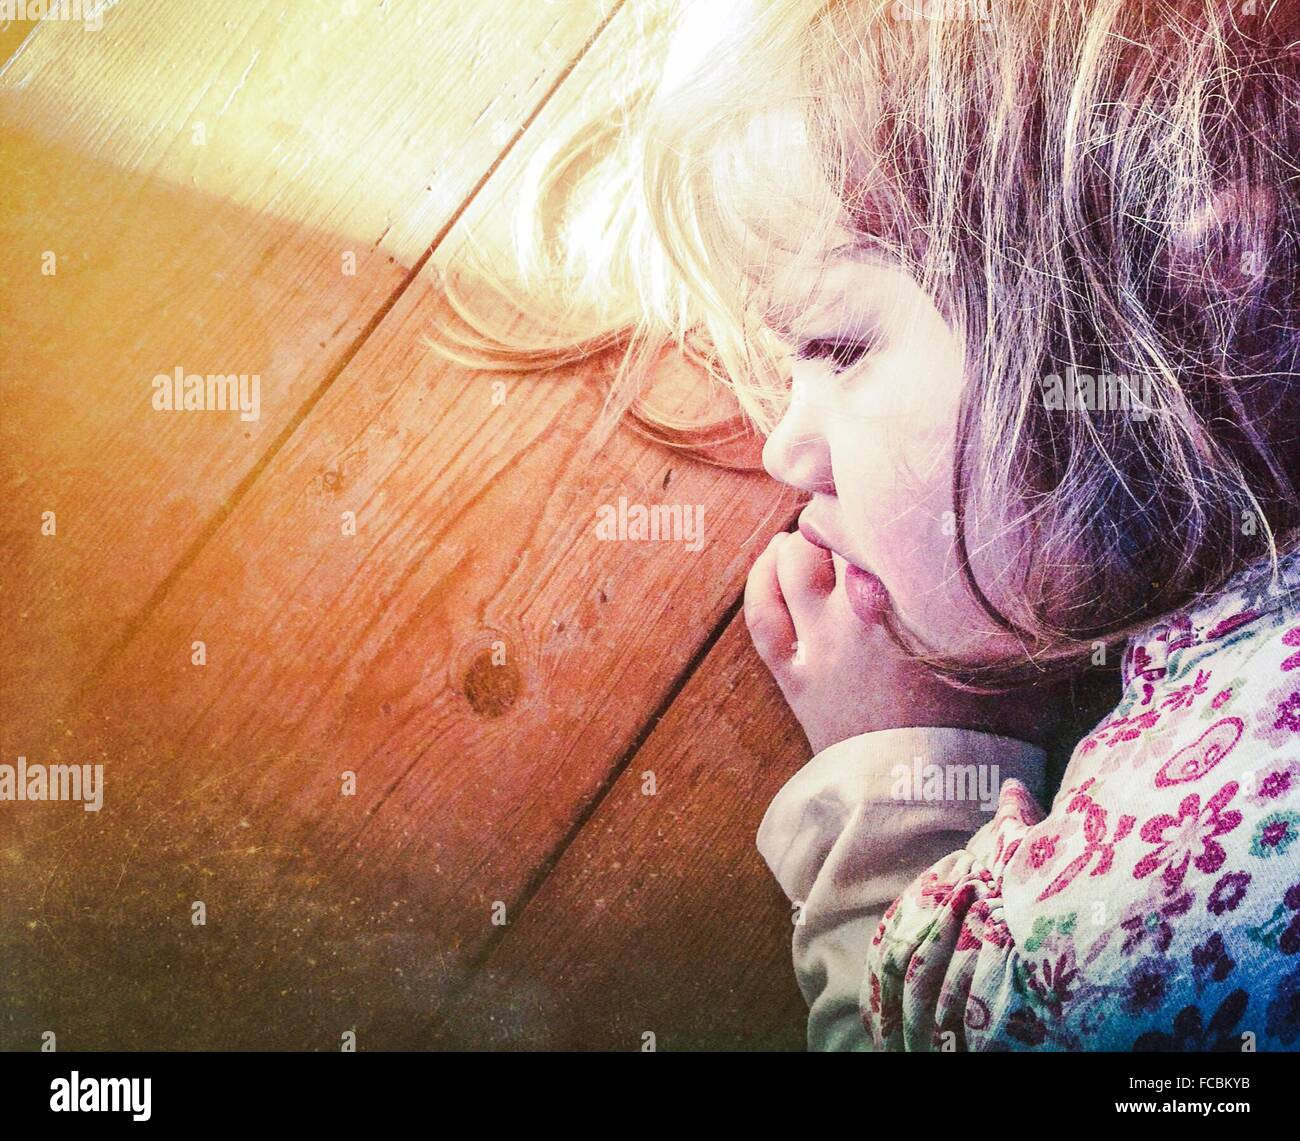 Close-Up Of Cute Young Girl Sleeping On Wooden Surface - Stock Image